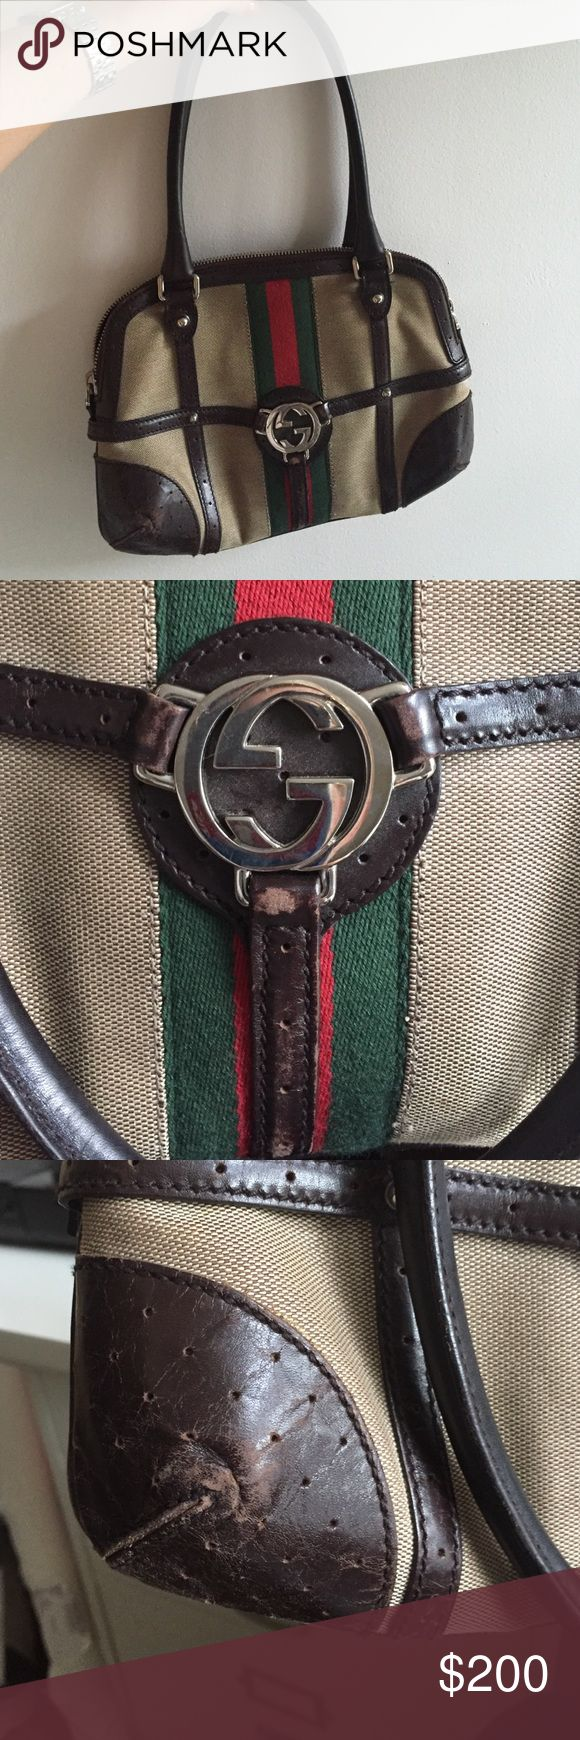 Gucci purse Authentic gucci purse - good used condition. Some signs of wear on exterior. See photos. Bags Shoulder Bags